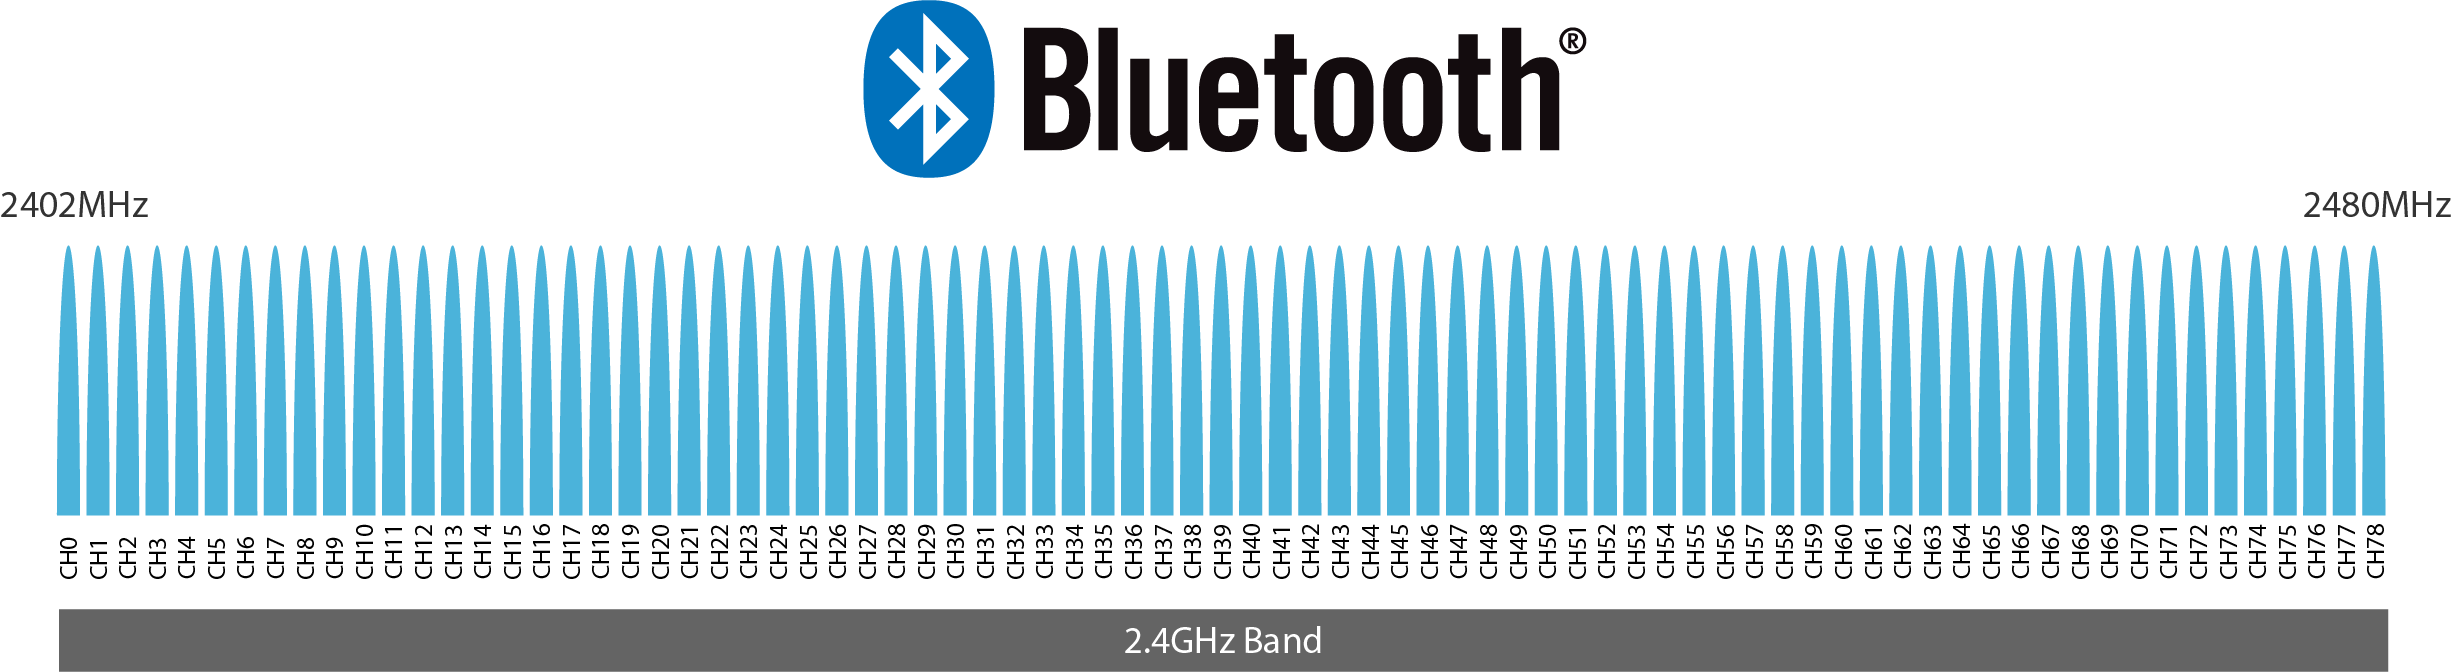 Bluetooth Classic Spectrum and Channels